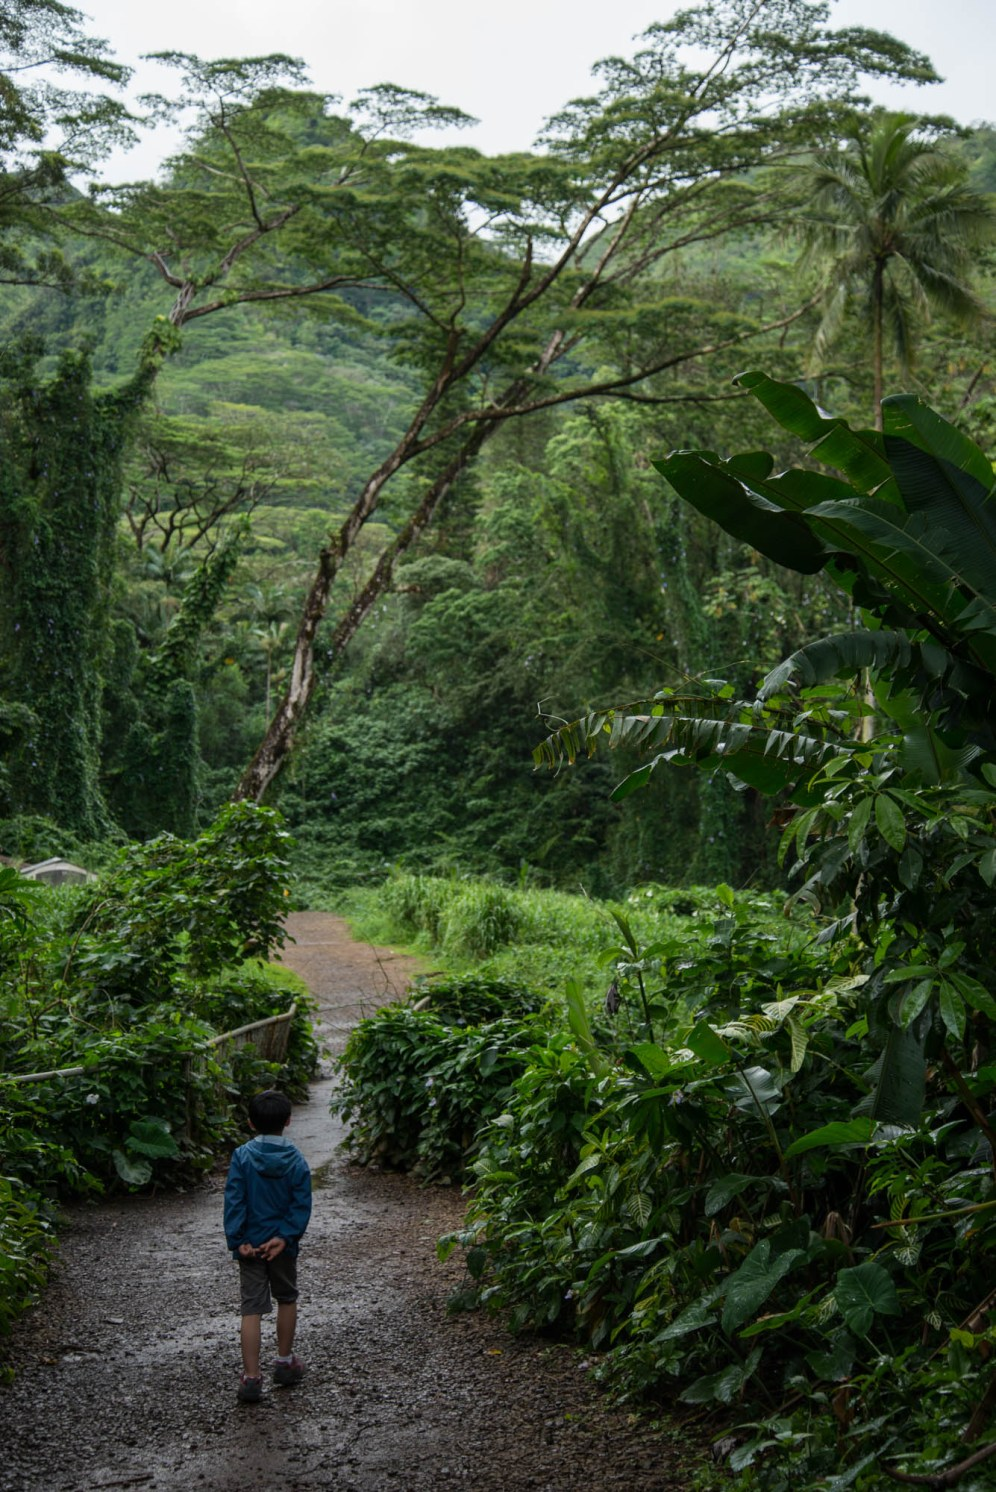 A young boy seen from behind walks by himself down a rainforest trail to Manoa Falls in Hawaii.